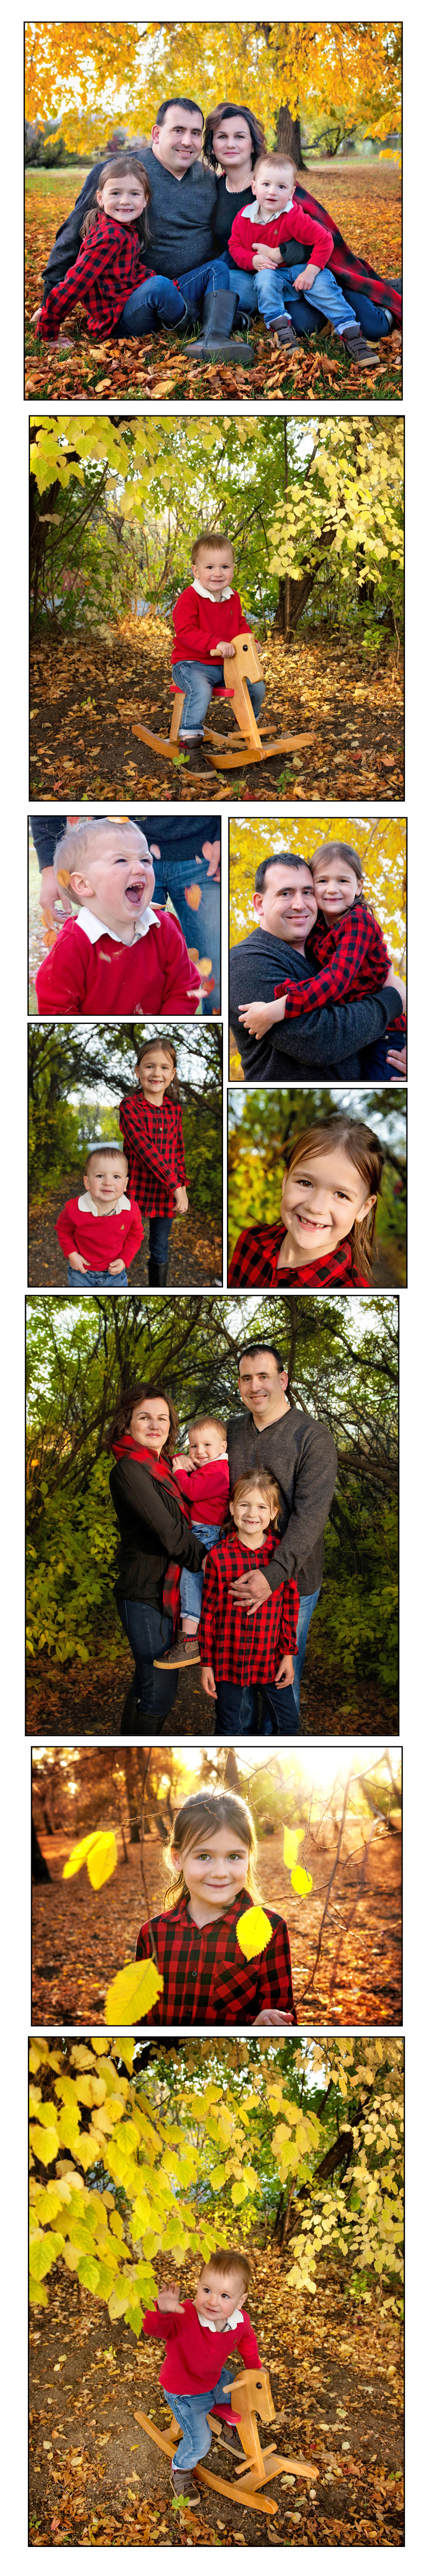 regina-family-photographer-free-lense-photo-01.jpg